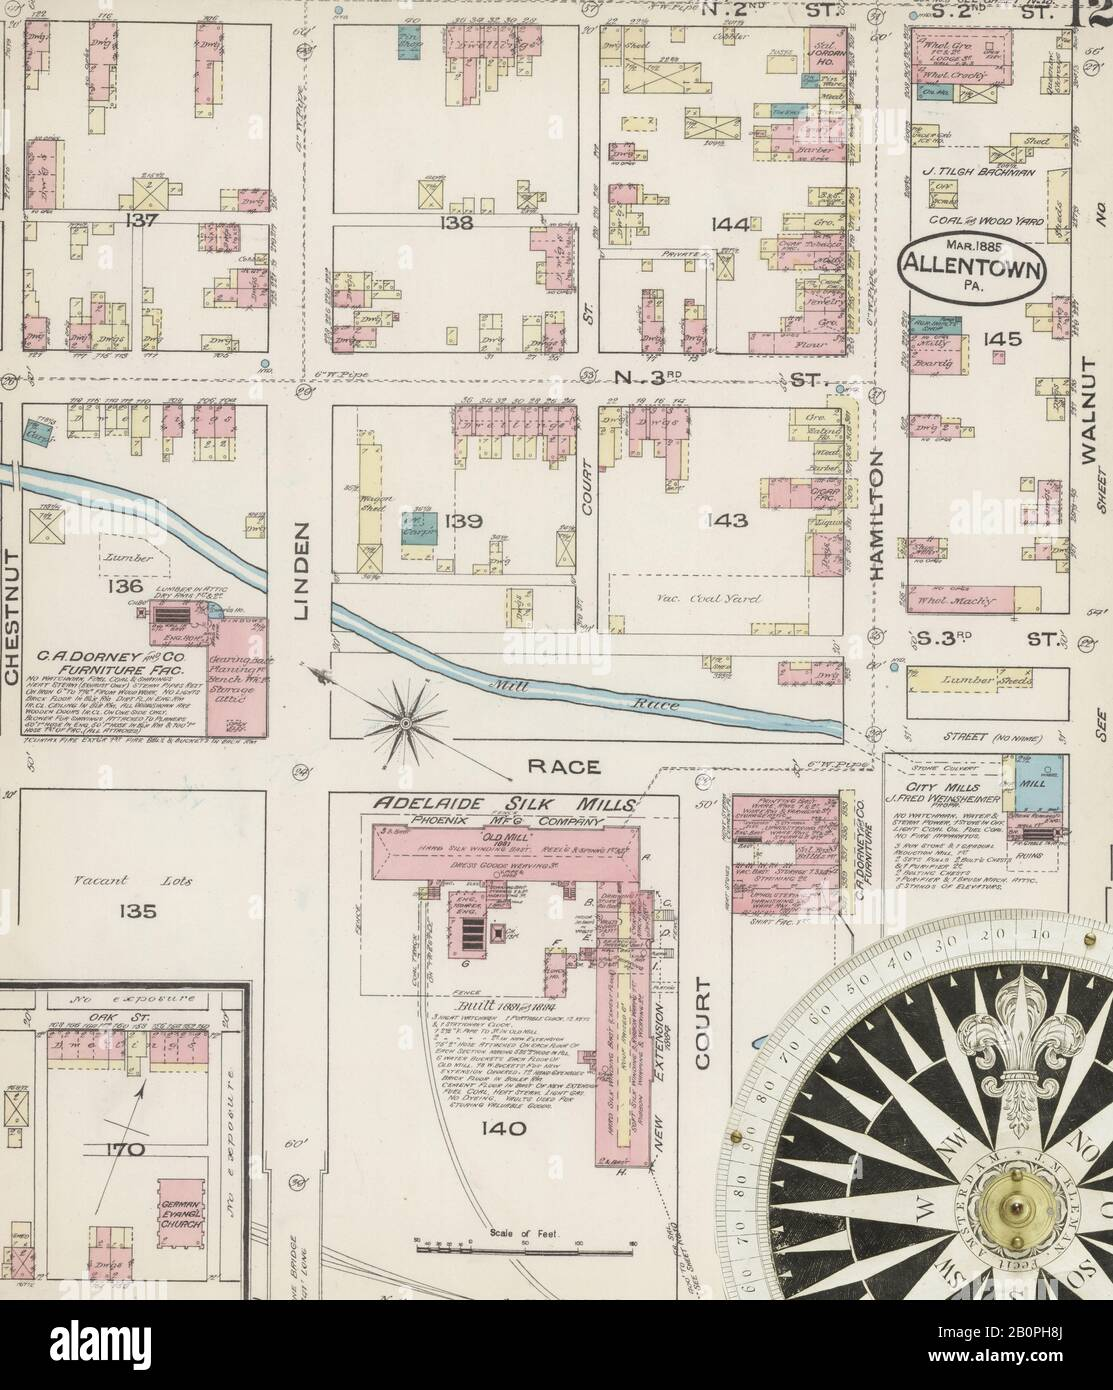 Image 12 of Sanborn Fire Insurance Map from Allentown, Lehigh County, Pennsylvania. Mar 1885. 25 Sheet(s), America, street map with a Nineteenth Century compass Stock Photo